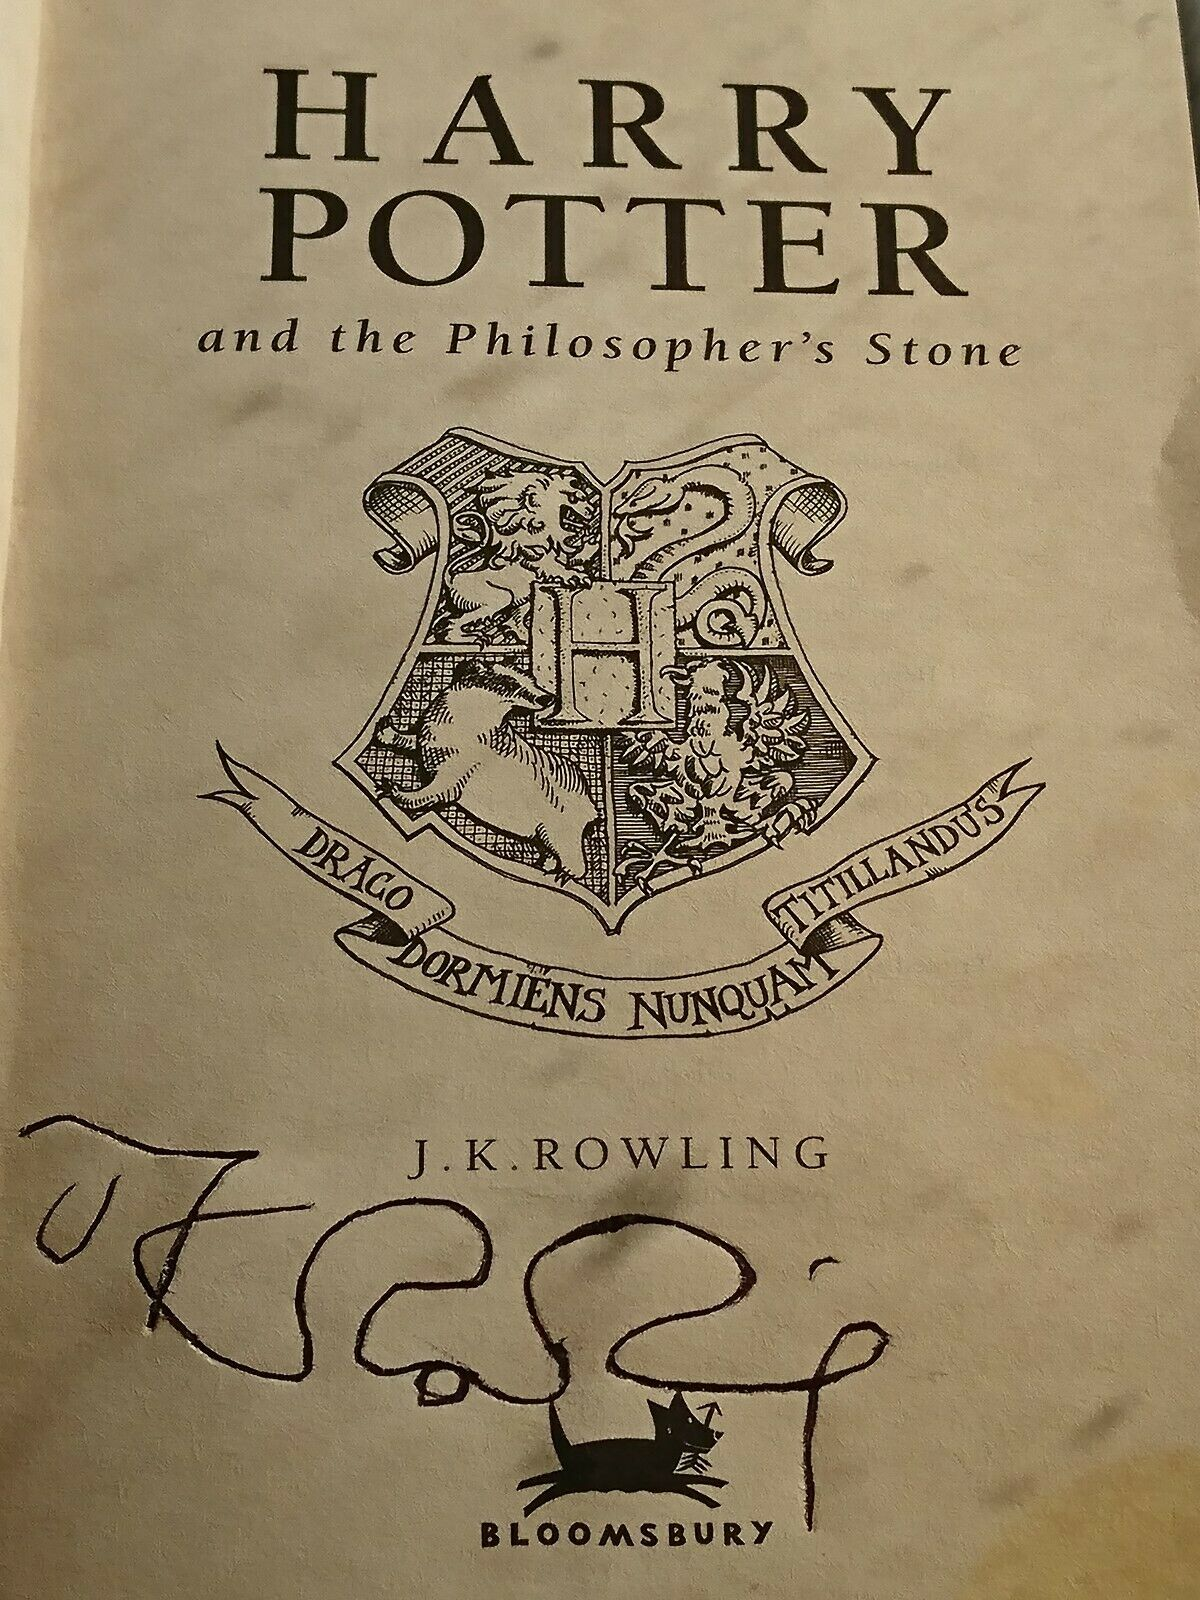 J.K. Rowling forgery found inside of a UK Celebration Edition of Harry Potter and the Philosopher's Stone on eBay.